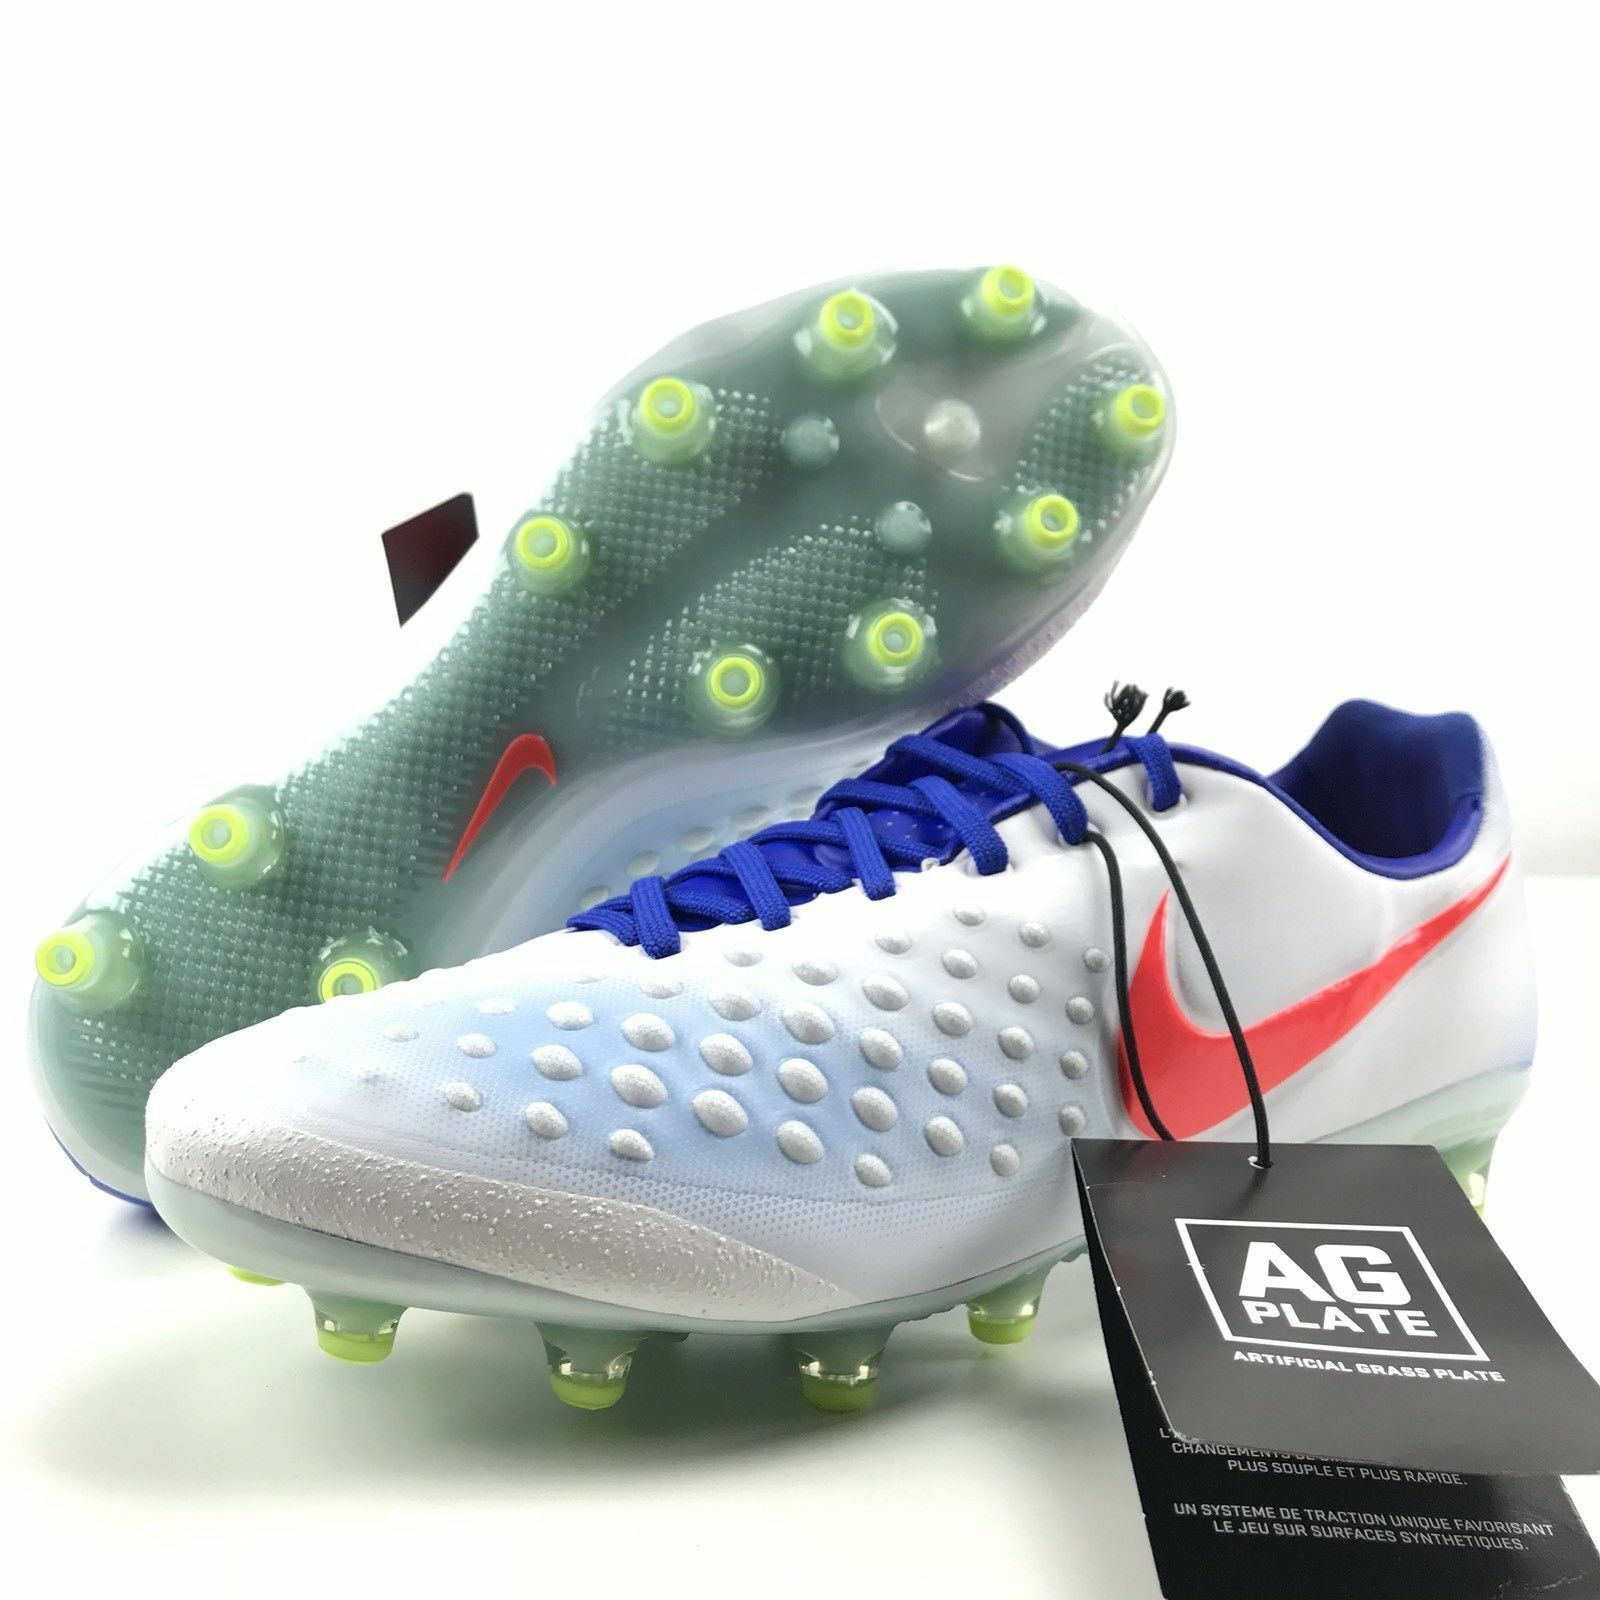 Details about Nike Magista Opus II 2 AG ACC Women s Soccer Cleats  White Blue 844217 164 Sz 11 42a1d317ab